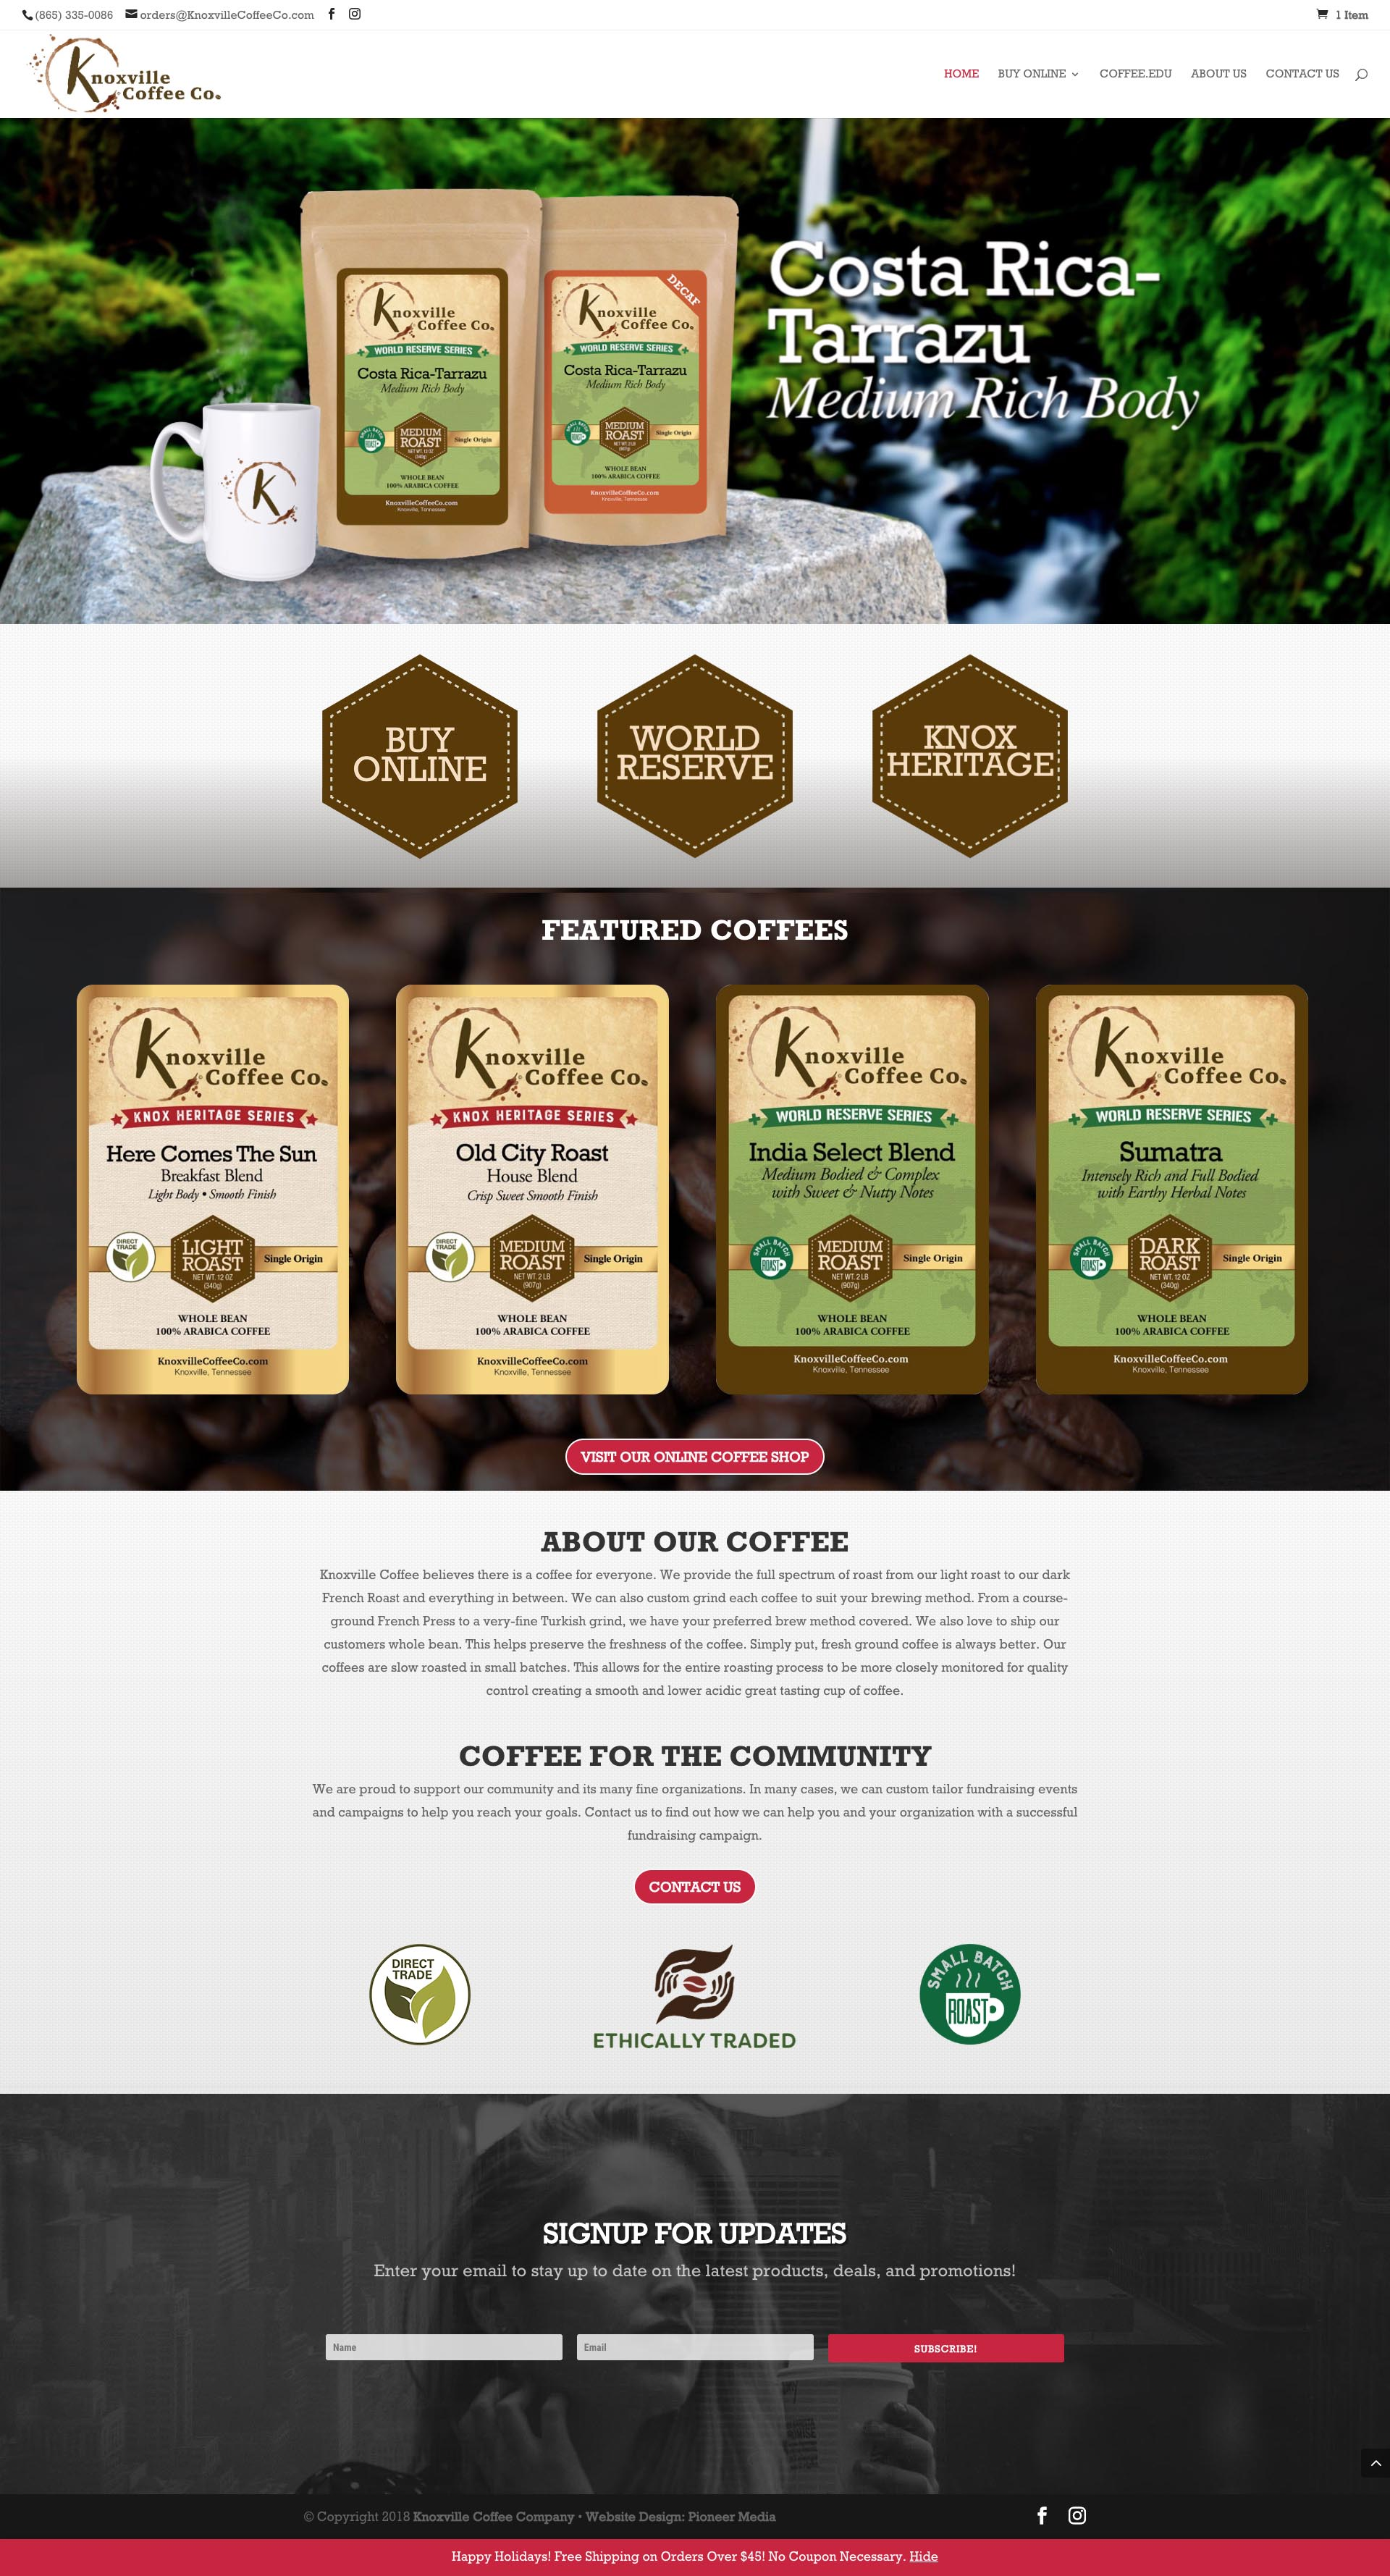 Knoxville Coffee Company Homepage